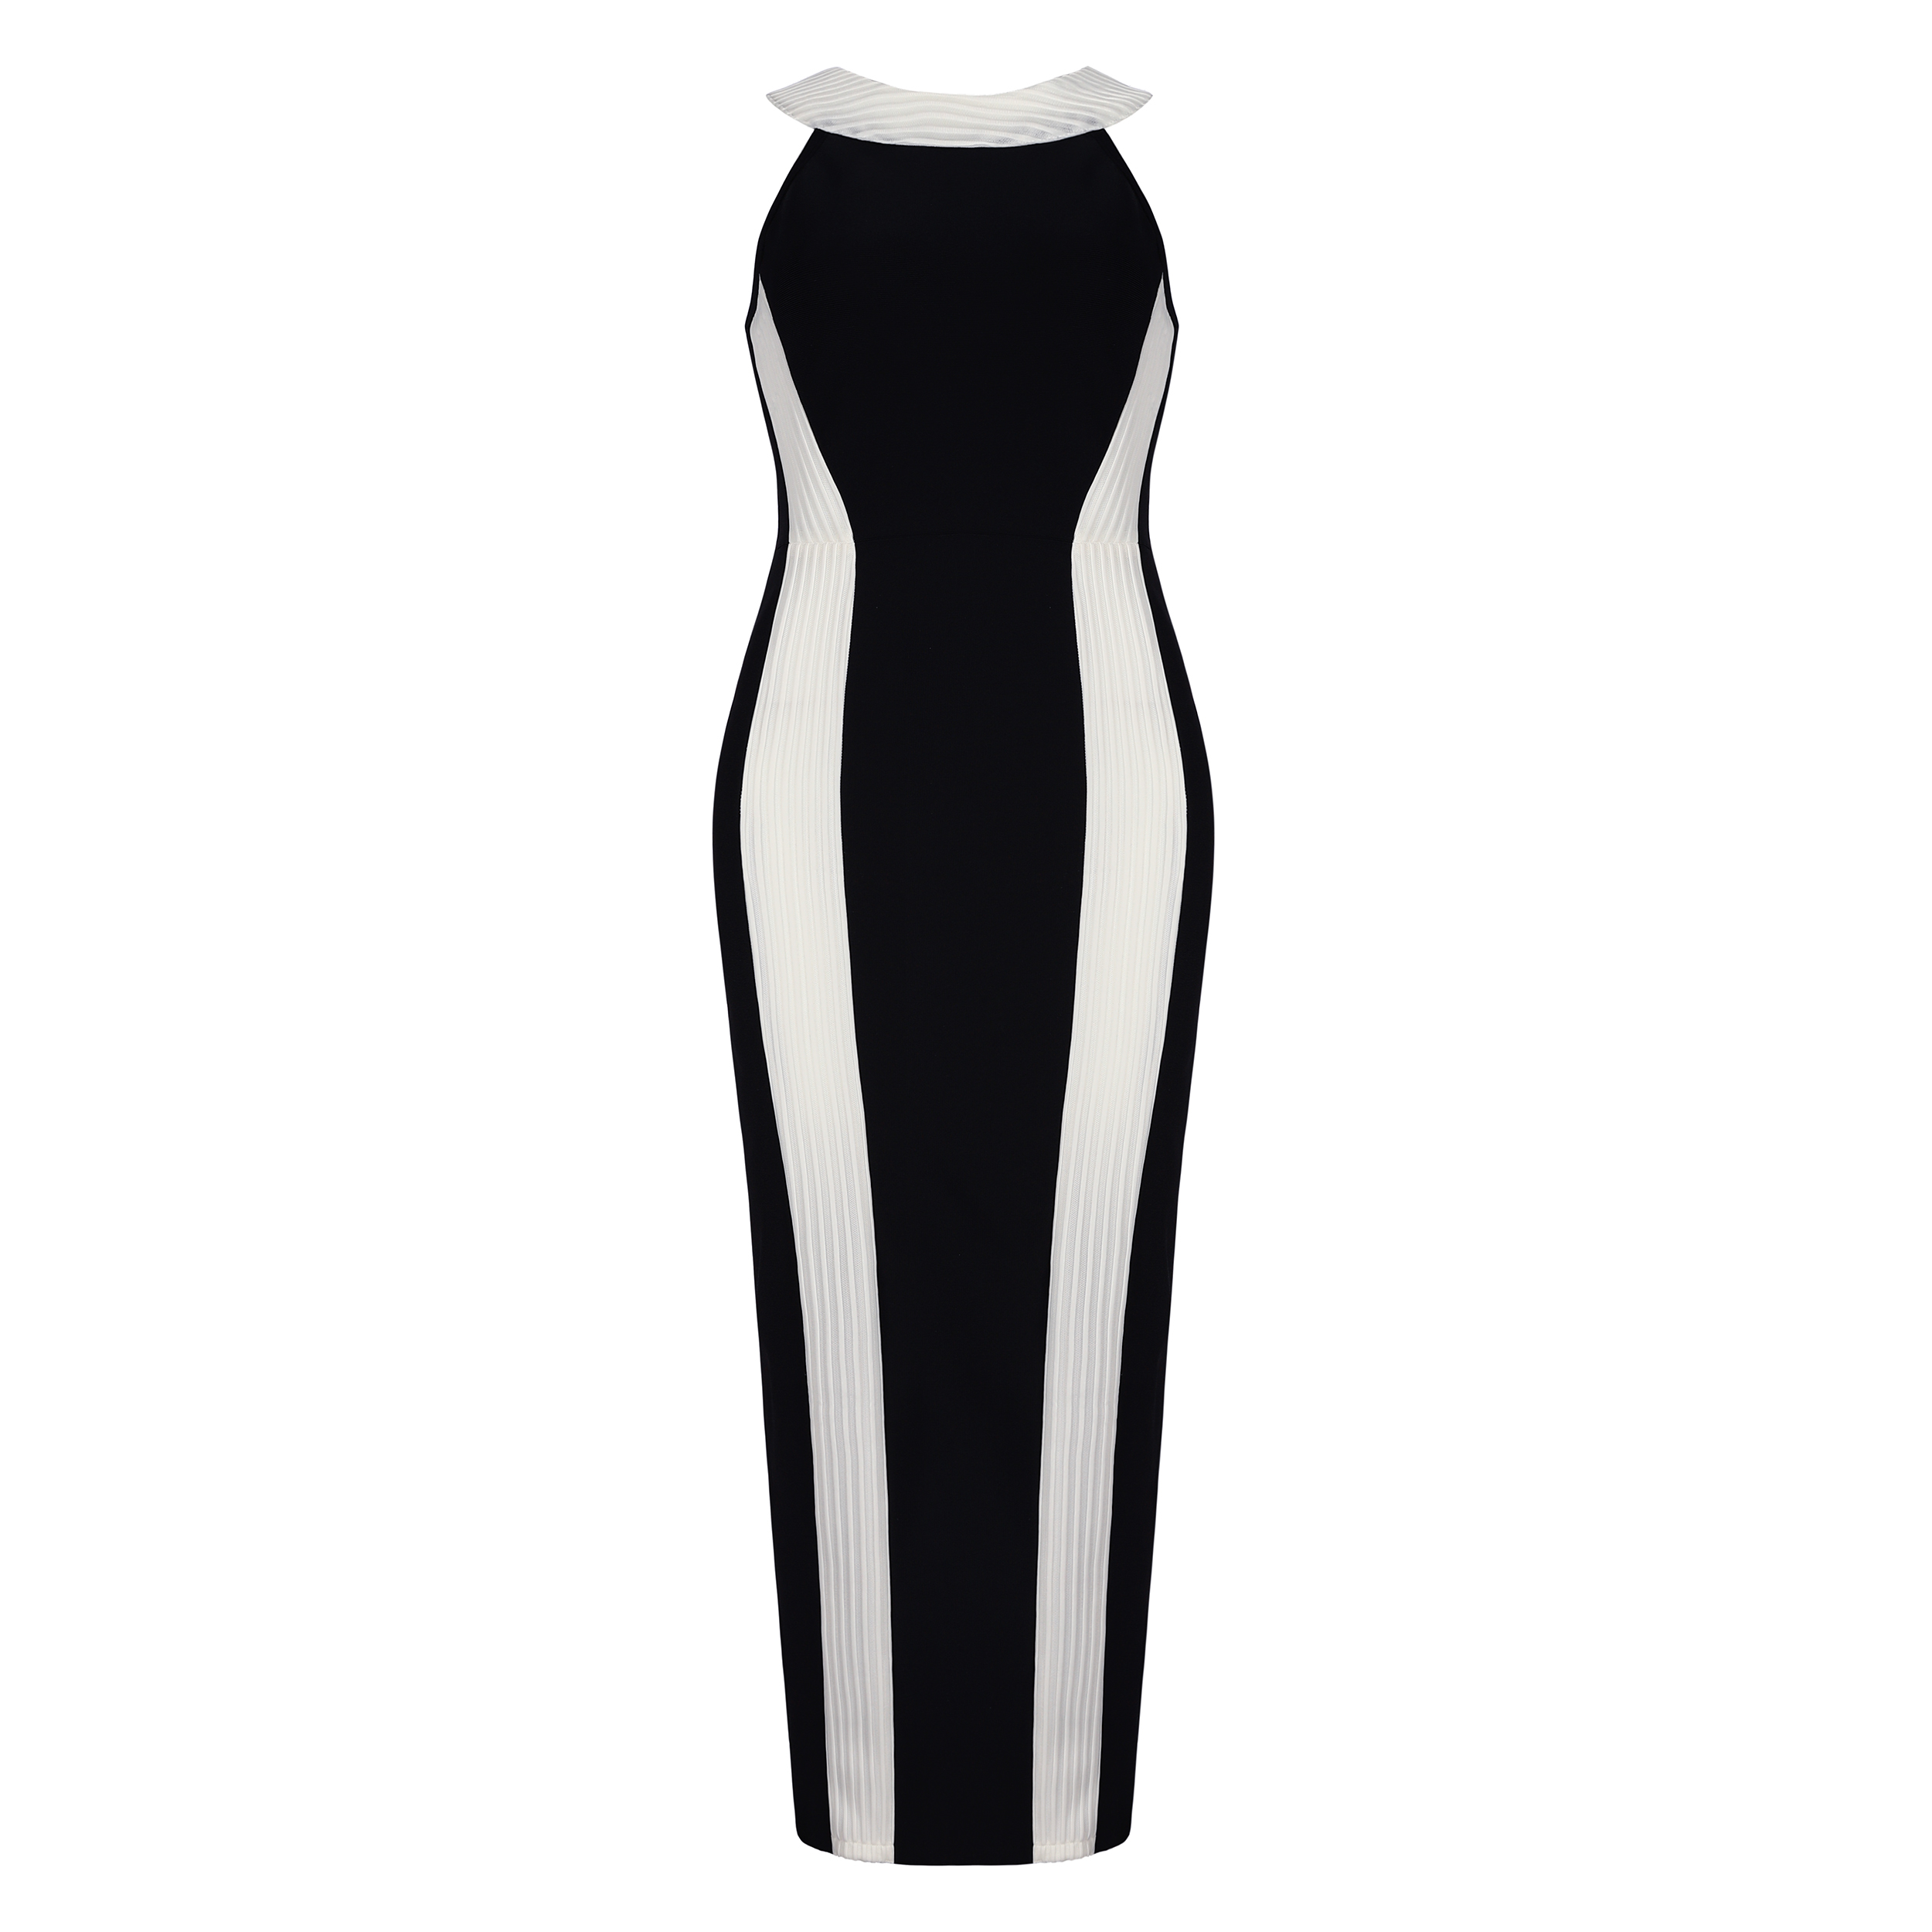 Party Dress 2018 Newest Design Fashion Straight Sleeveless Unique Runway Striped Black & White Evening Sexy Maxi Halter Dresses